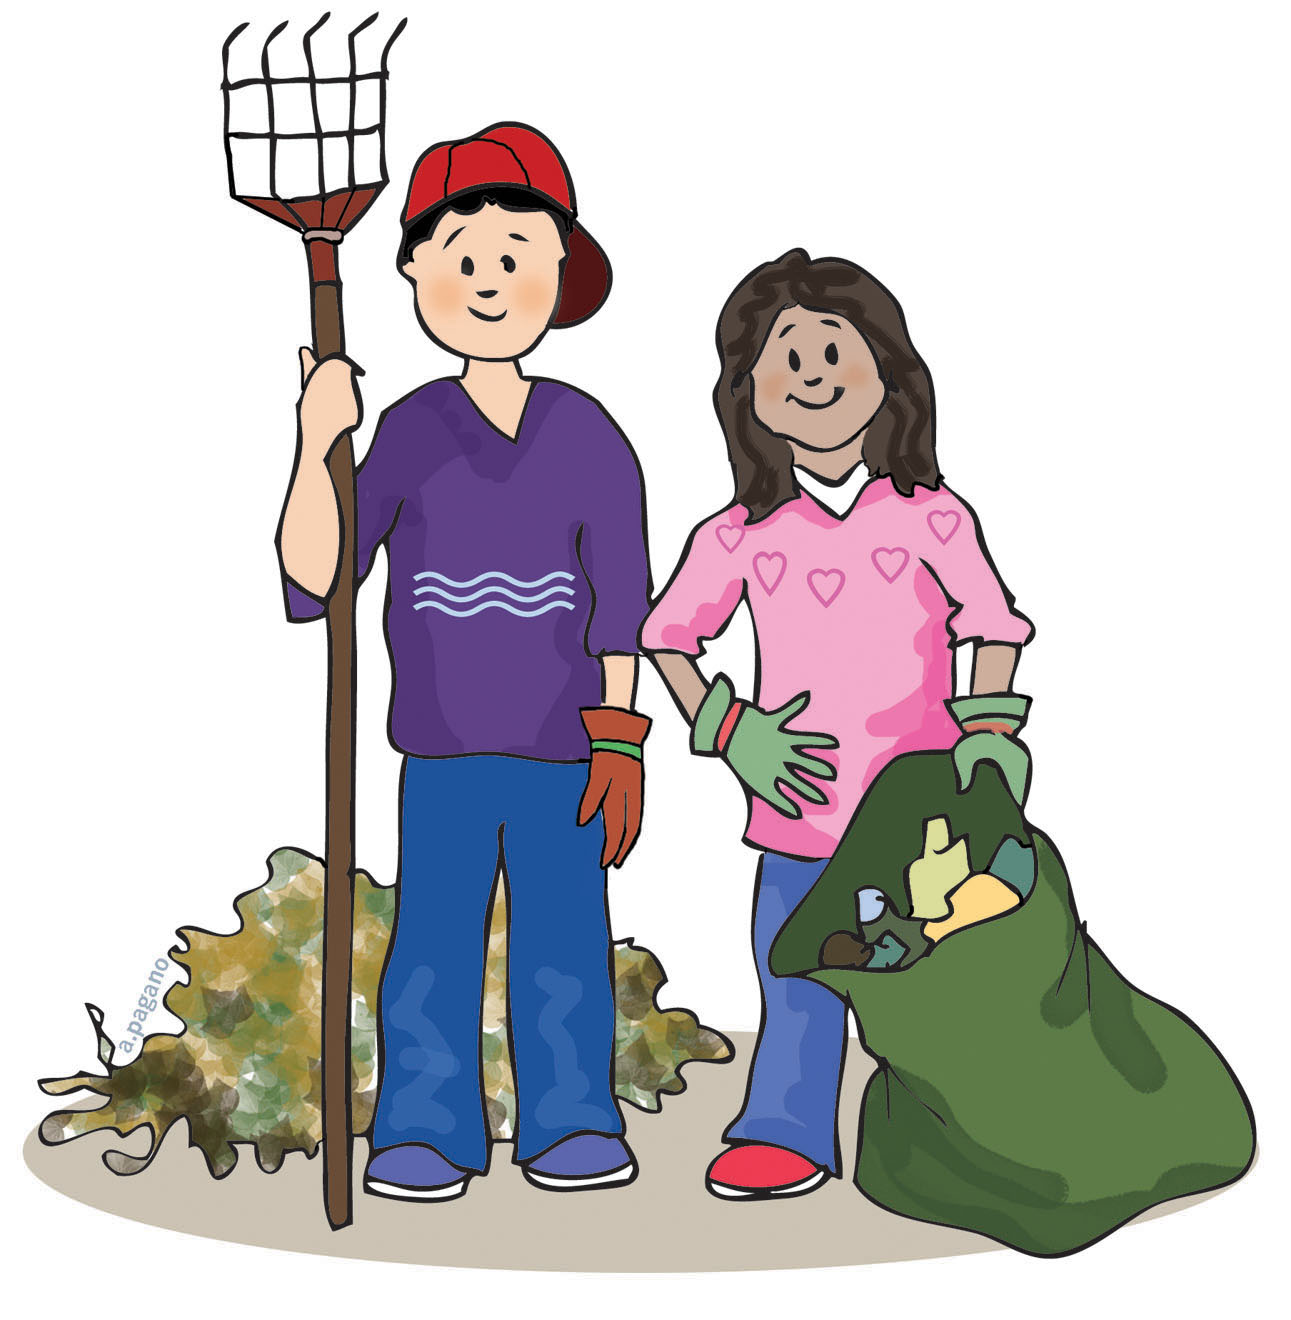 Free cleaning day cliparts. Neighborhood clipart clean neighborhood